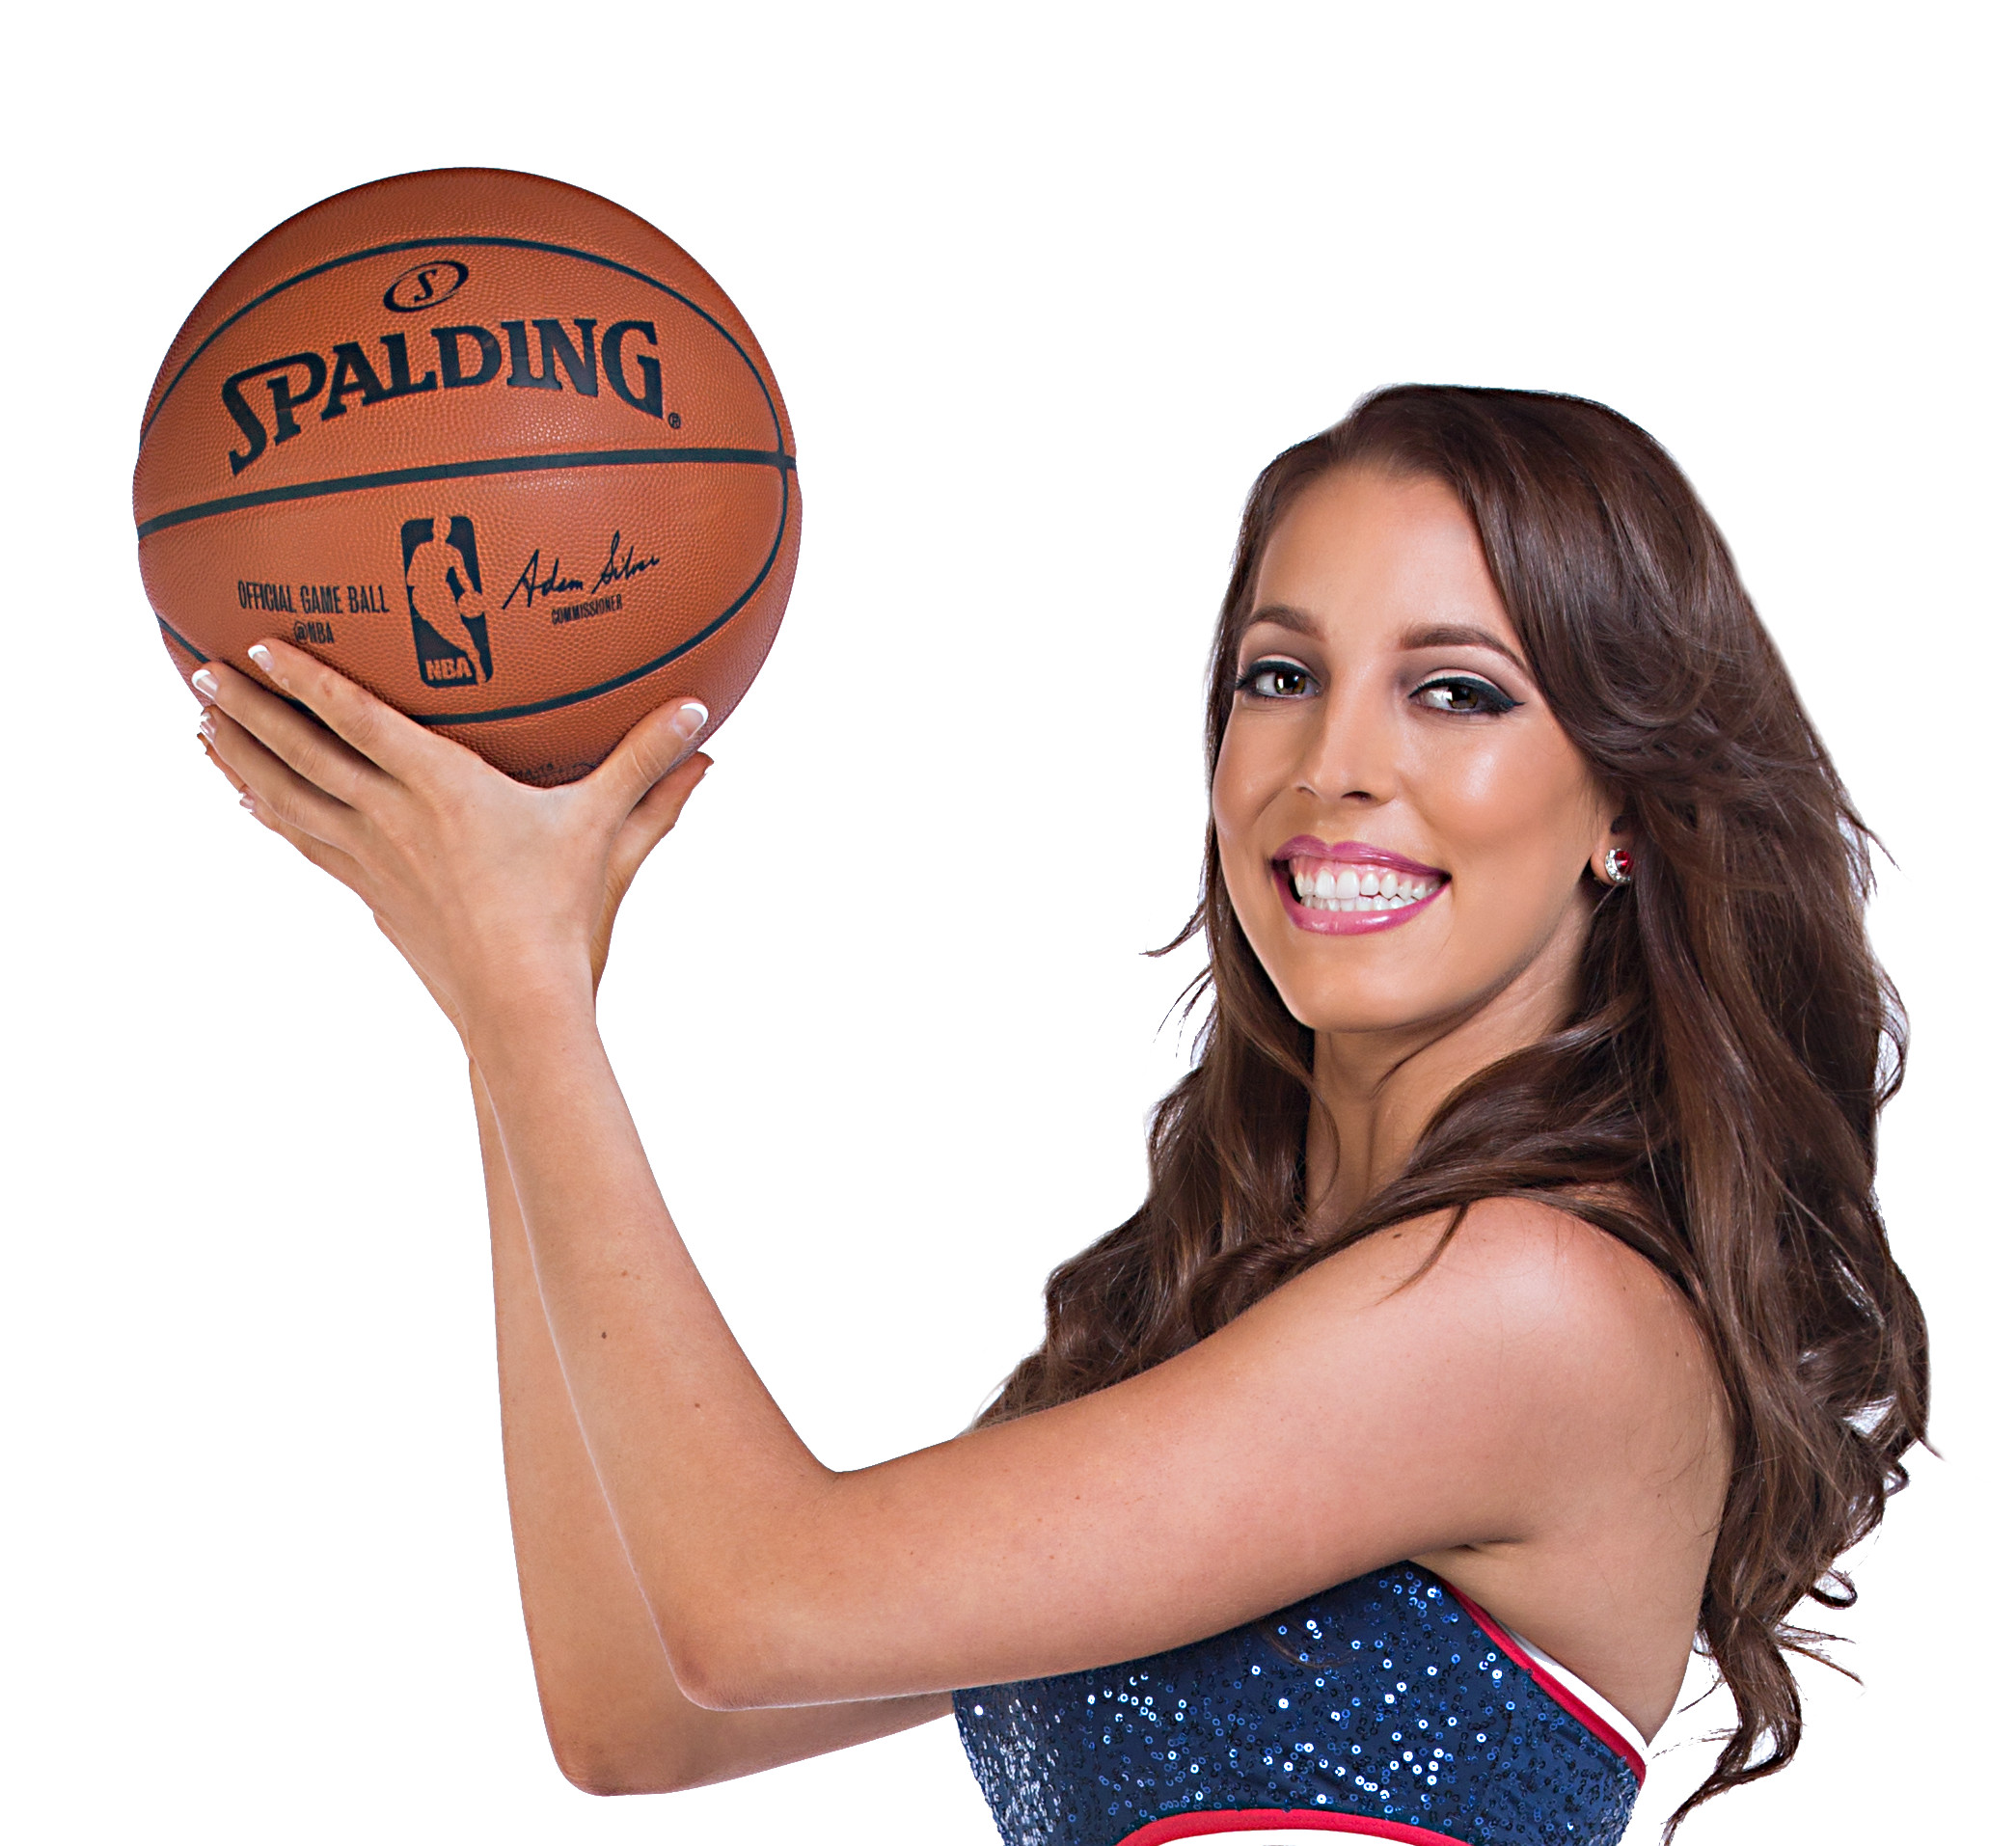 Jaclyn: Washington Wizards Cheerleader, Mathematician, and Computer Engineer, performing with Science Cheerleaders at the USA Science and Engineering Festival